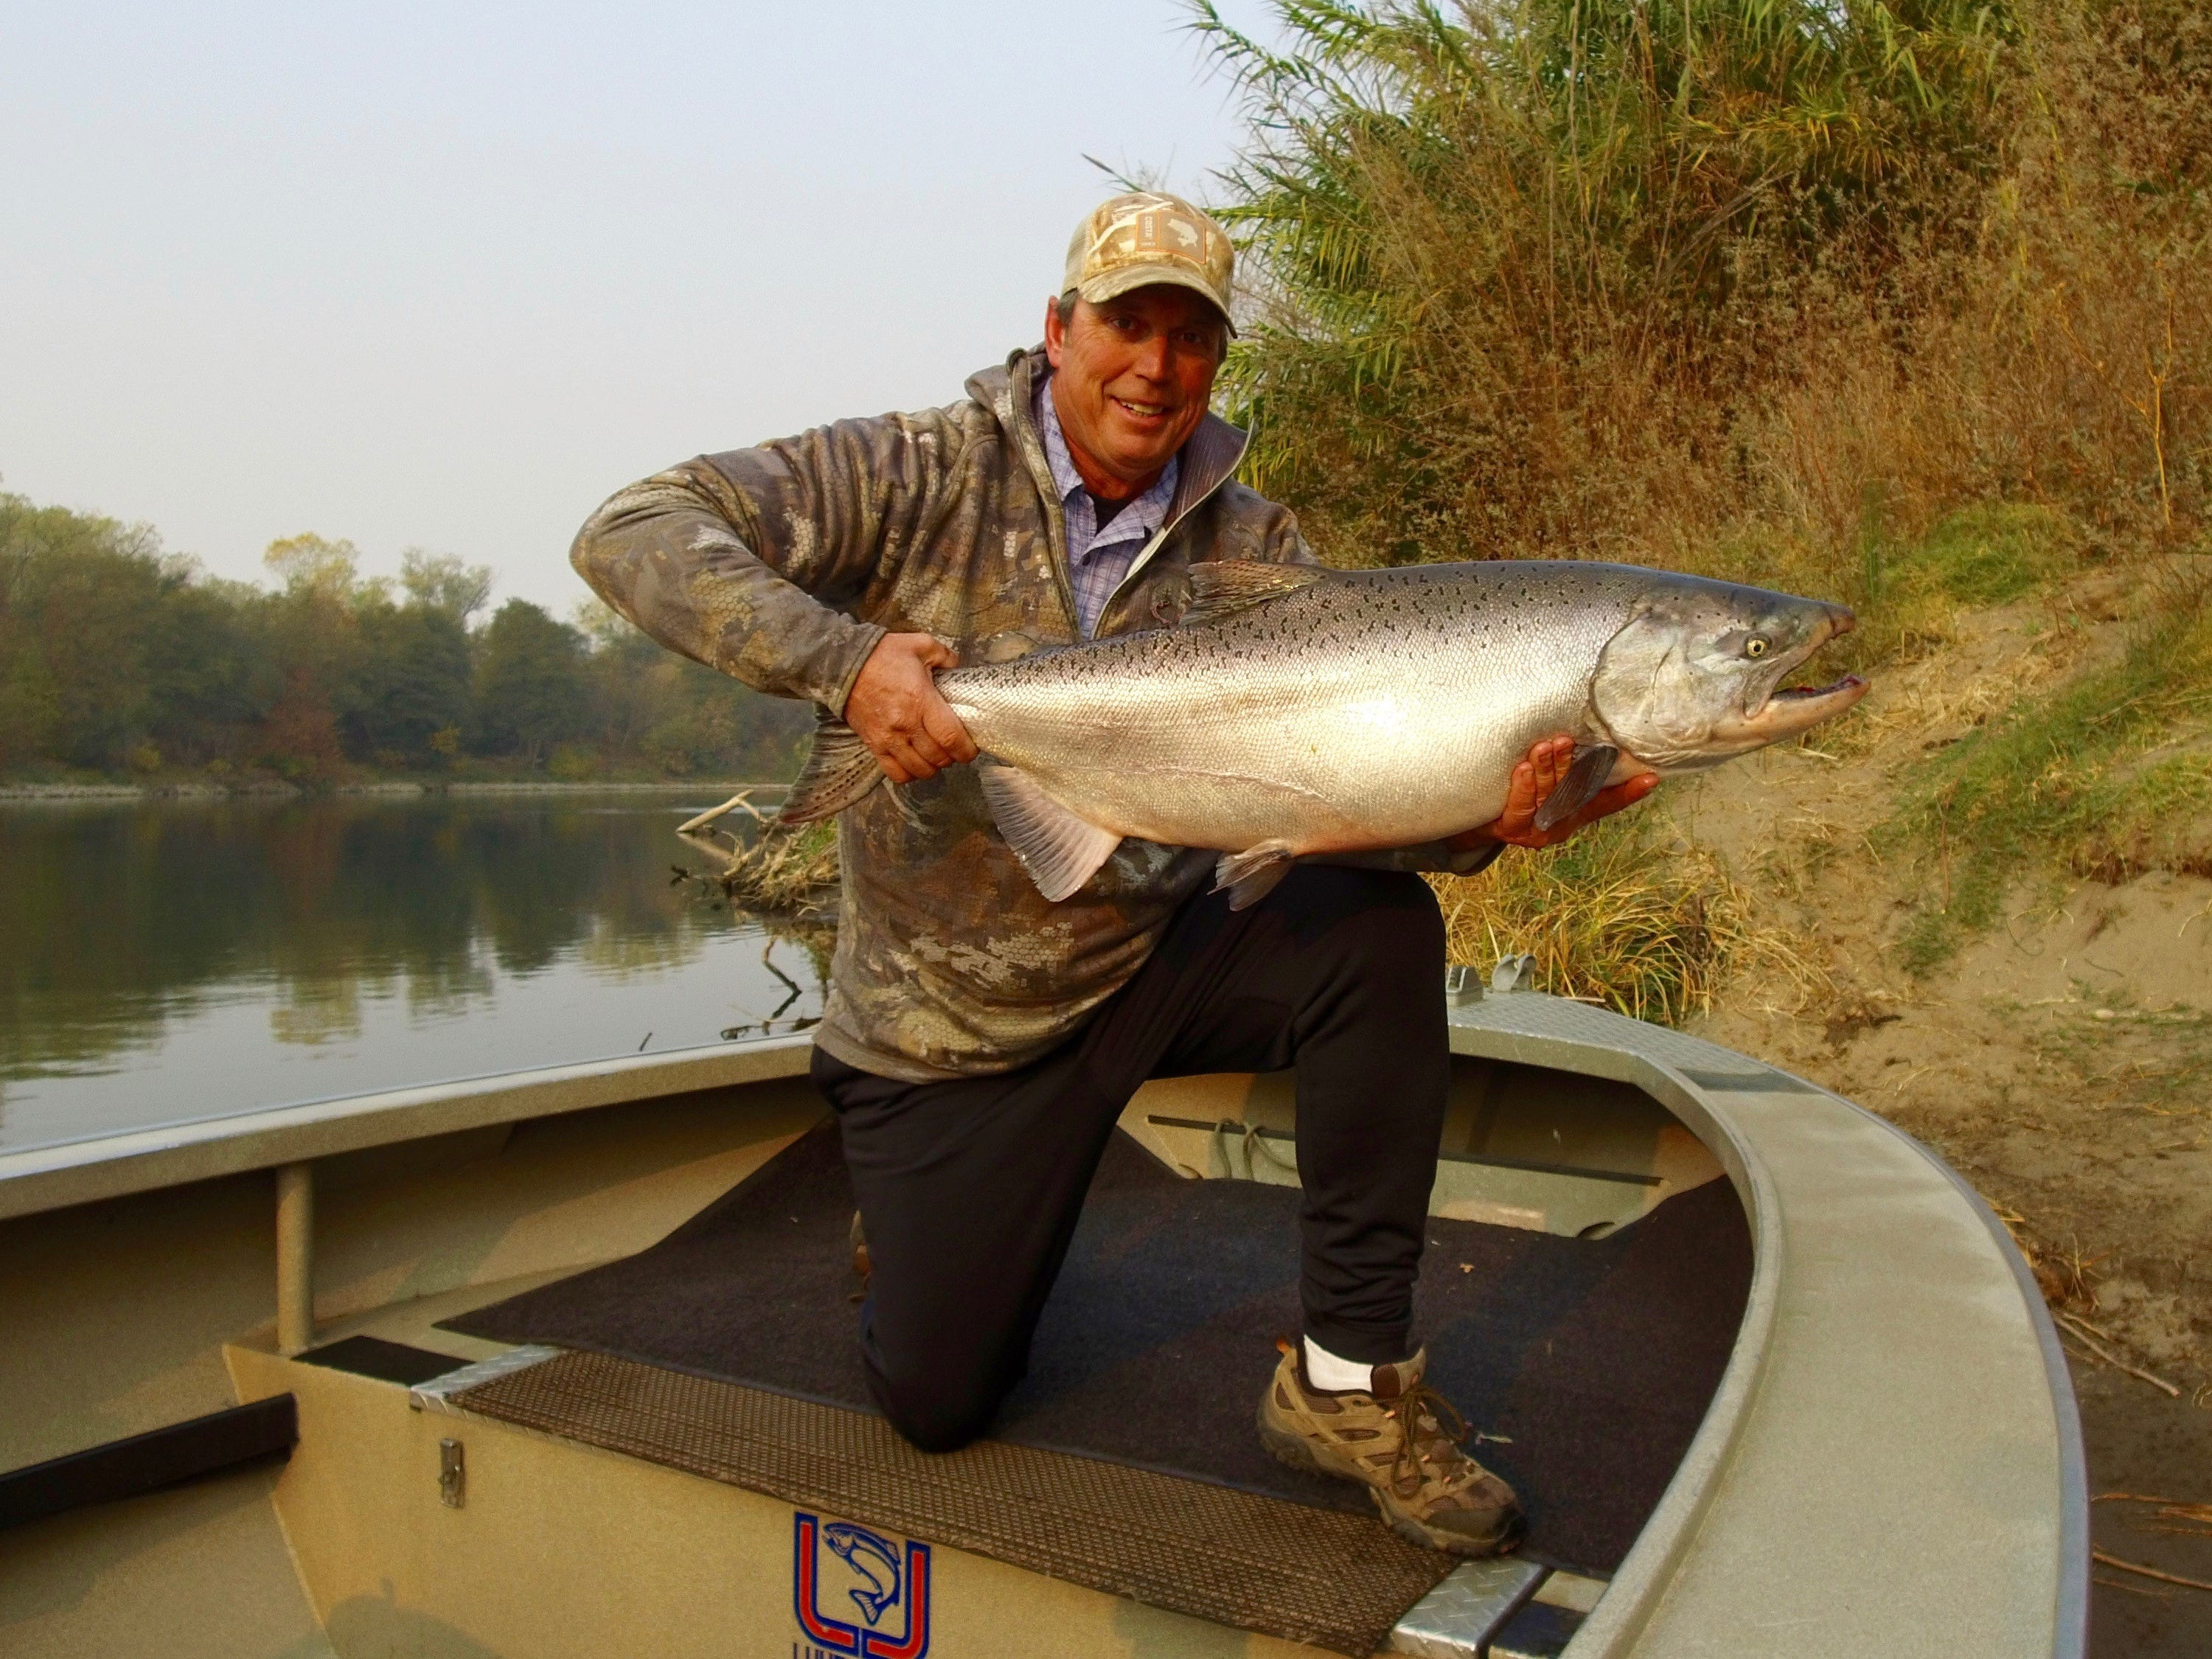 Dave Jacobs of Professional Guide Service in Redding holds a large, chrome bright Sacramento River late fall king salmon.  Jacob's big king grabbed a fresh sardine wrapped K-16 Kwikfish on the Sacramento River this week below Red Bluff. November and December are peak months to target large, hard fighting late fall king salmon on the Sacramento River.